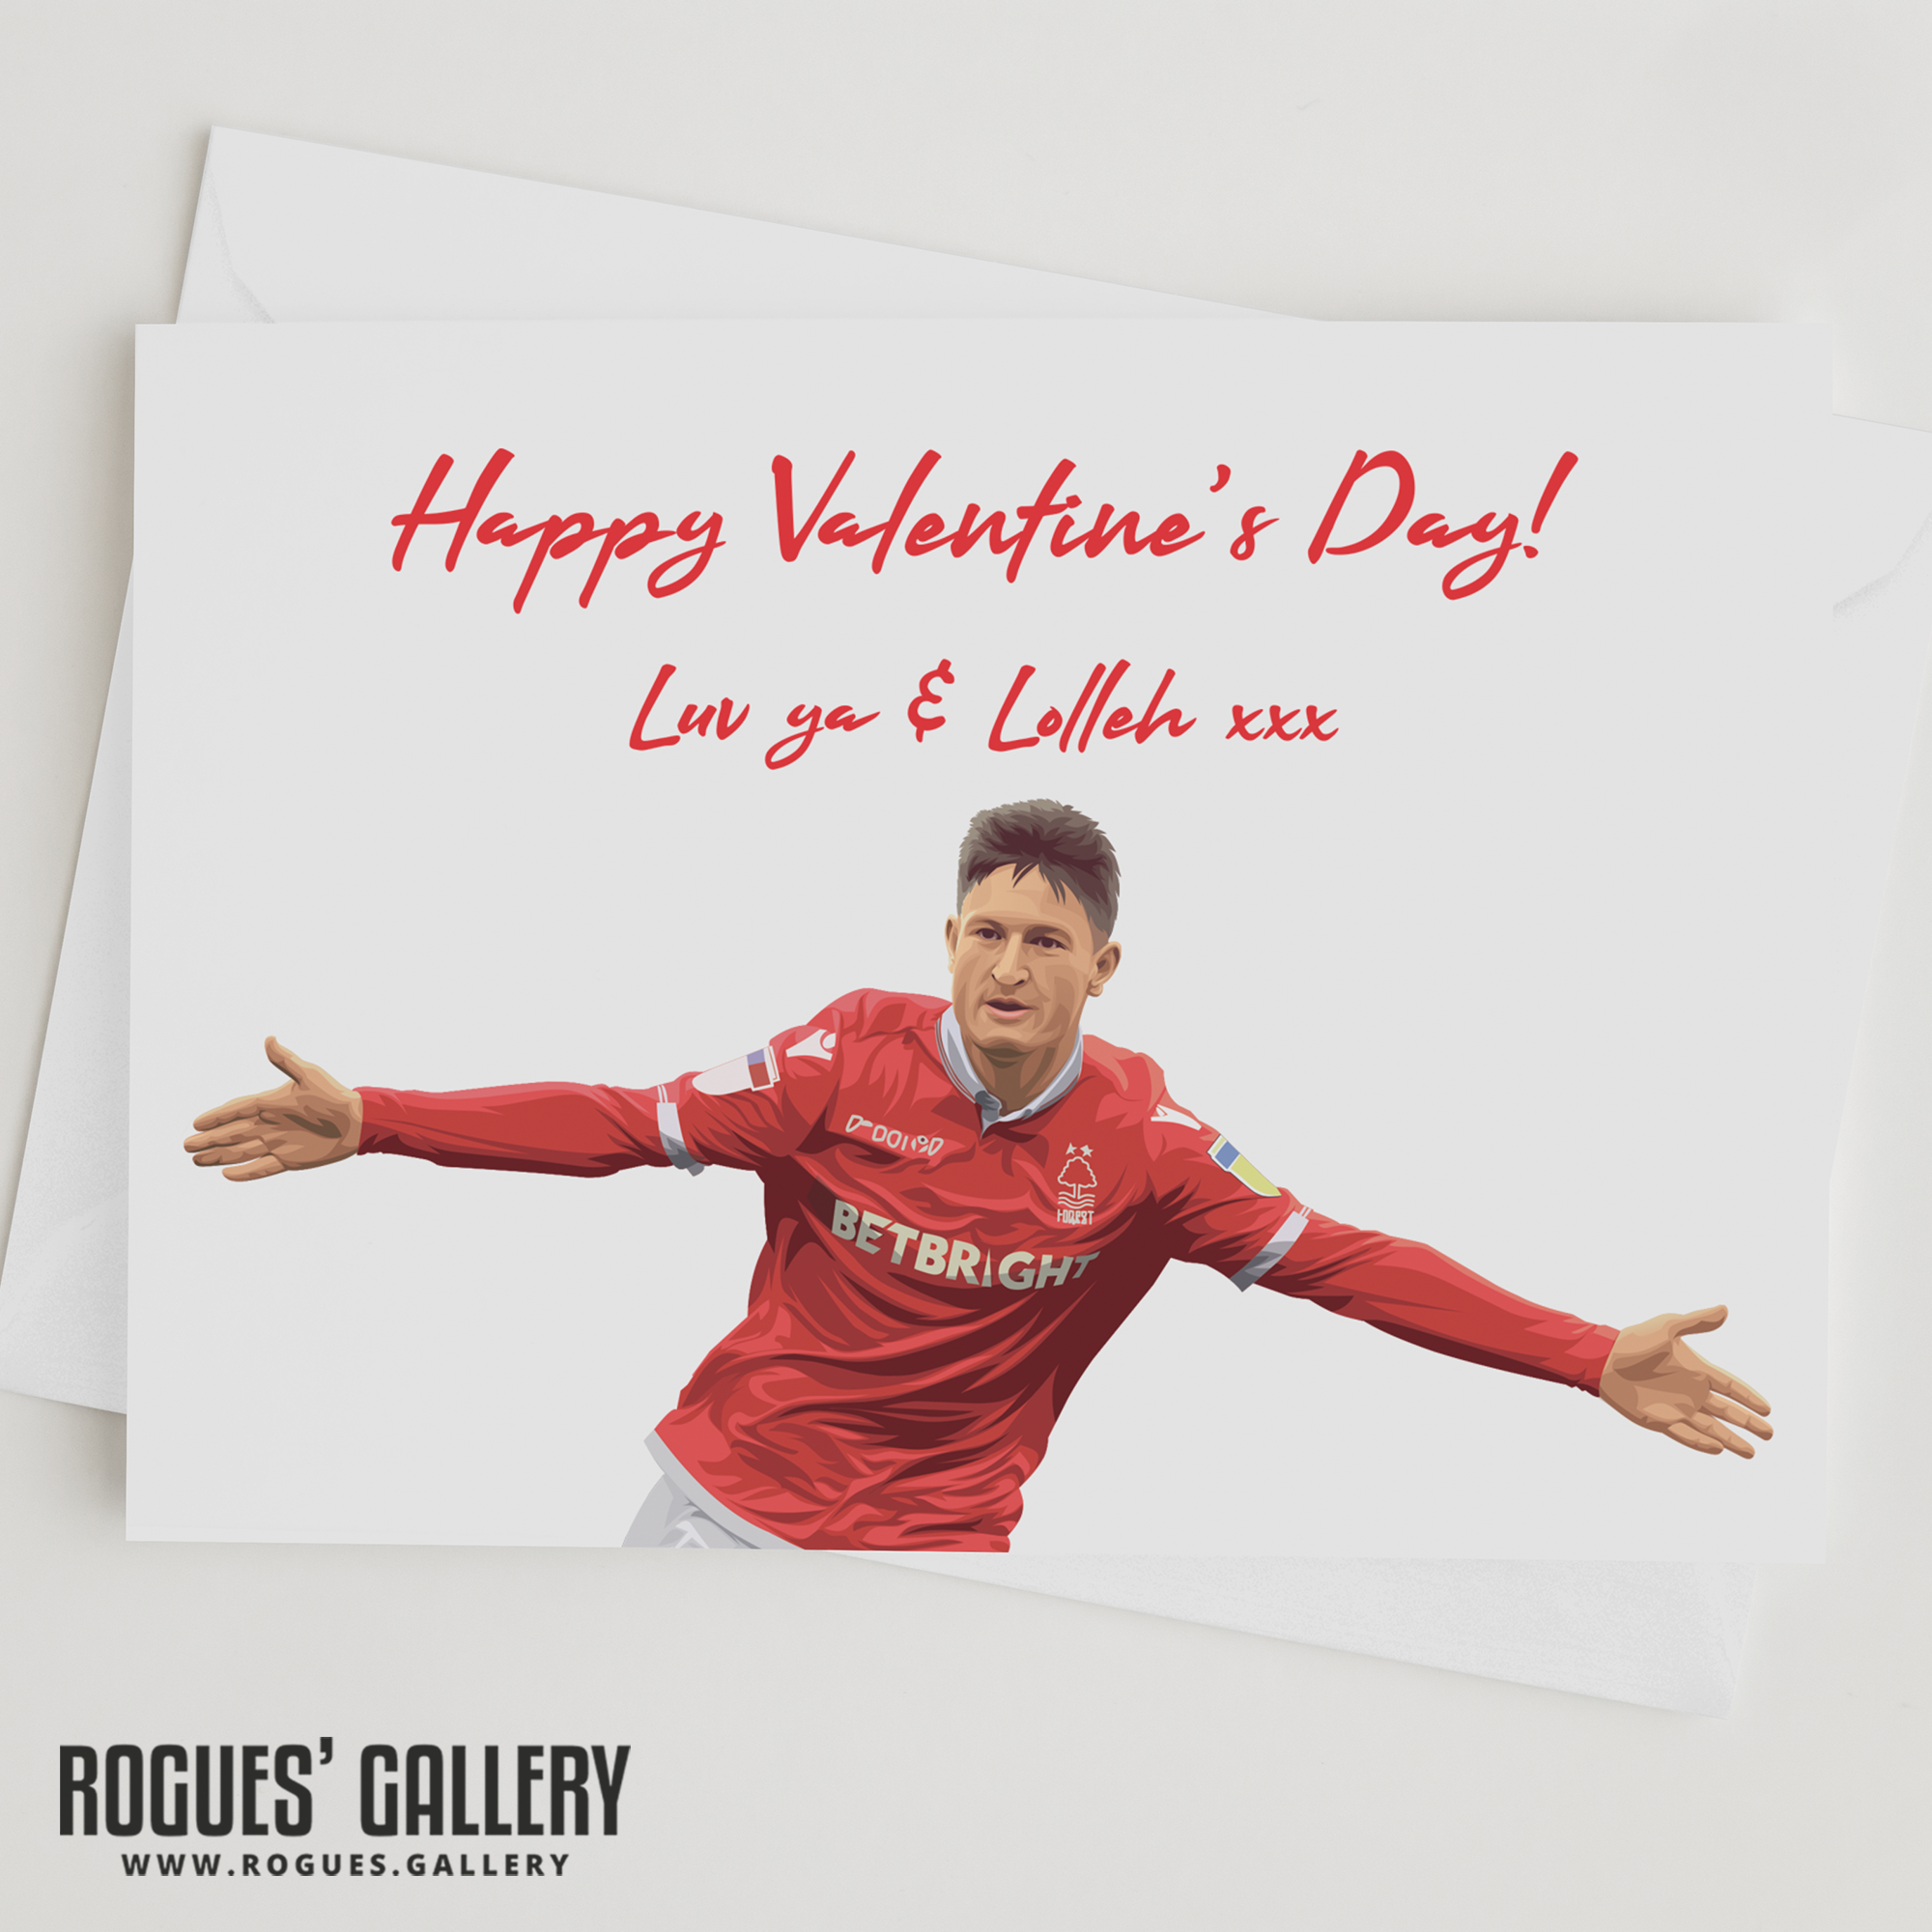 Joe Lolley Valentine's Day Card Lolleh NFFC Nottingham Forest